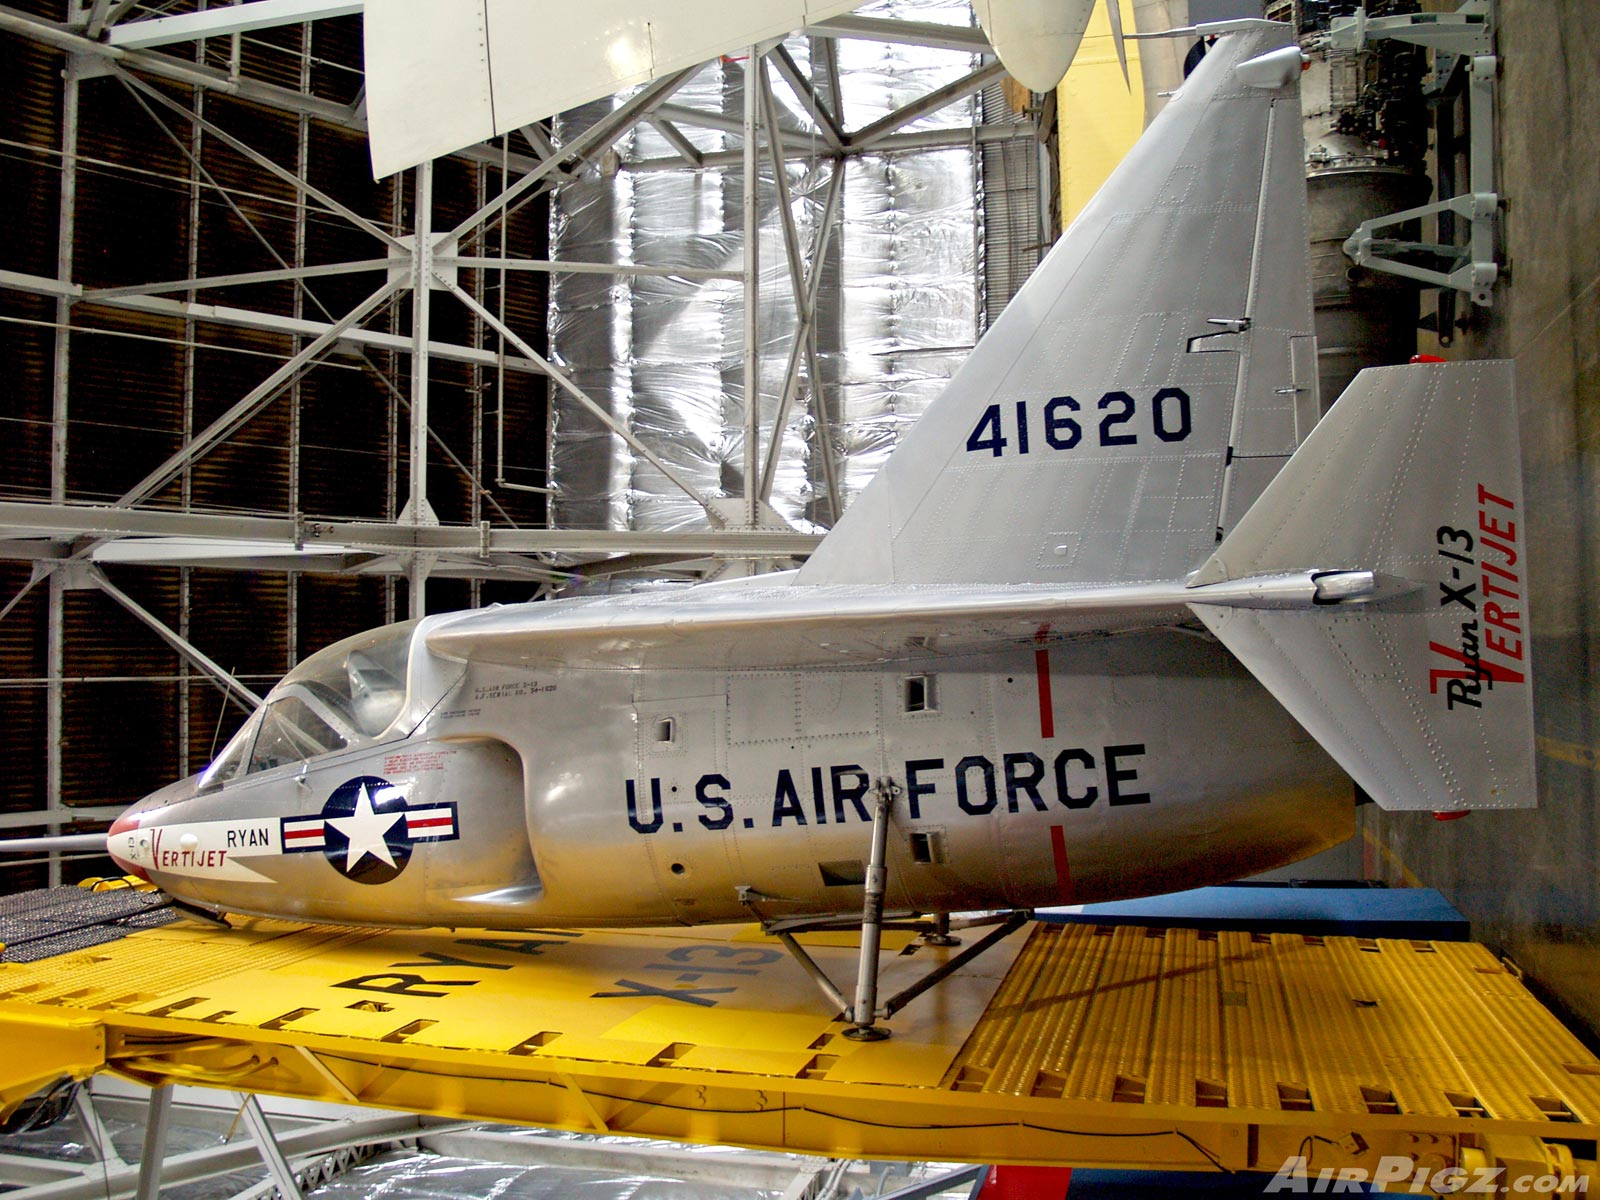 Air Force Museum: Ryan X-13 Vertijet CoolPix 2Fer (+ Video